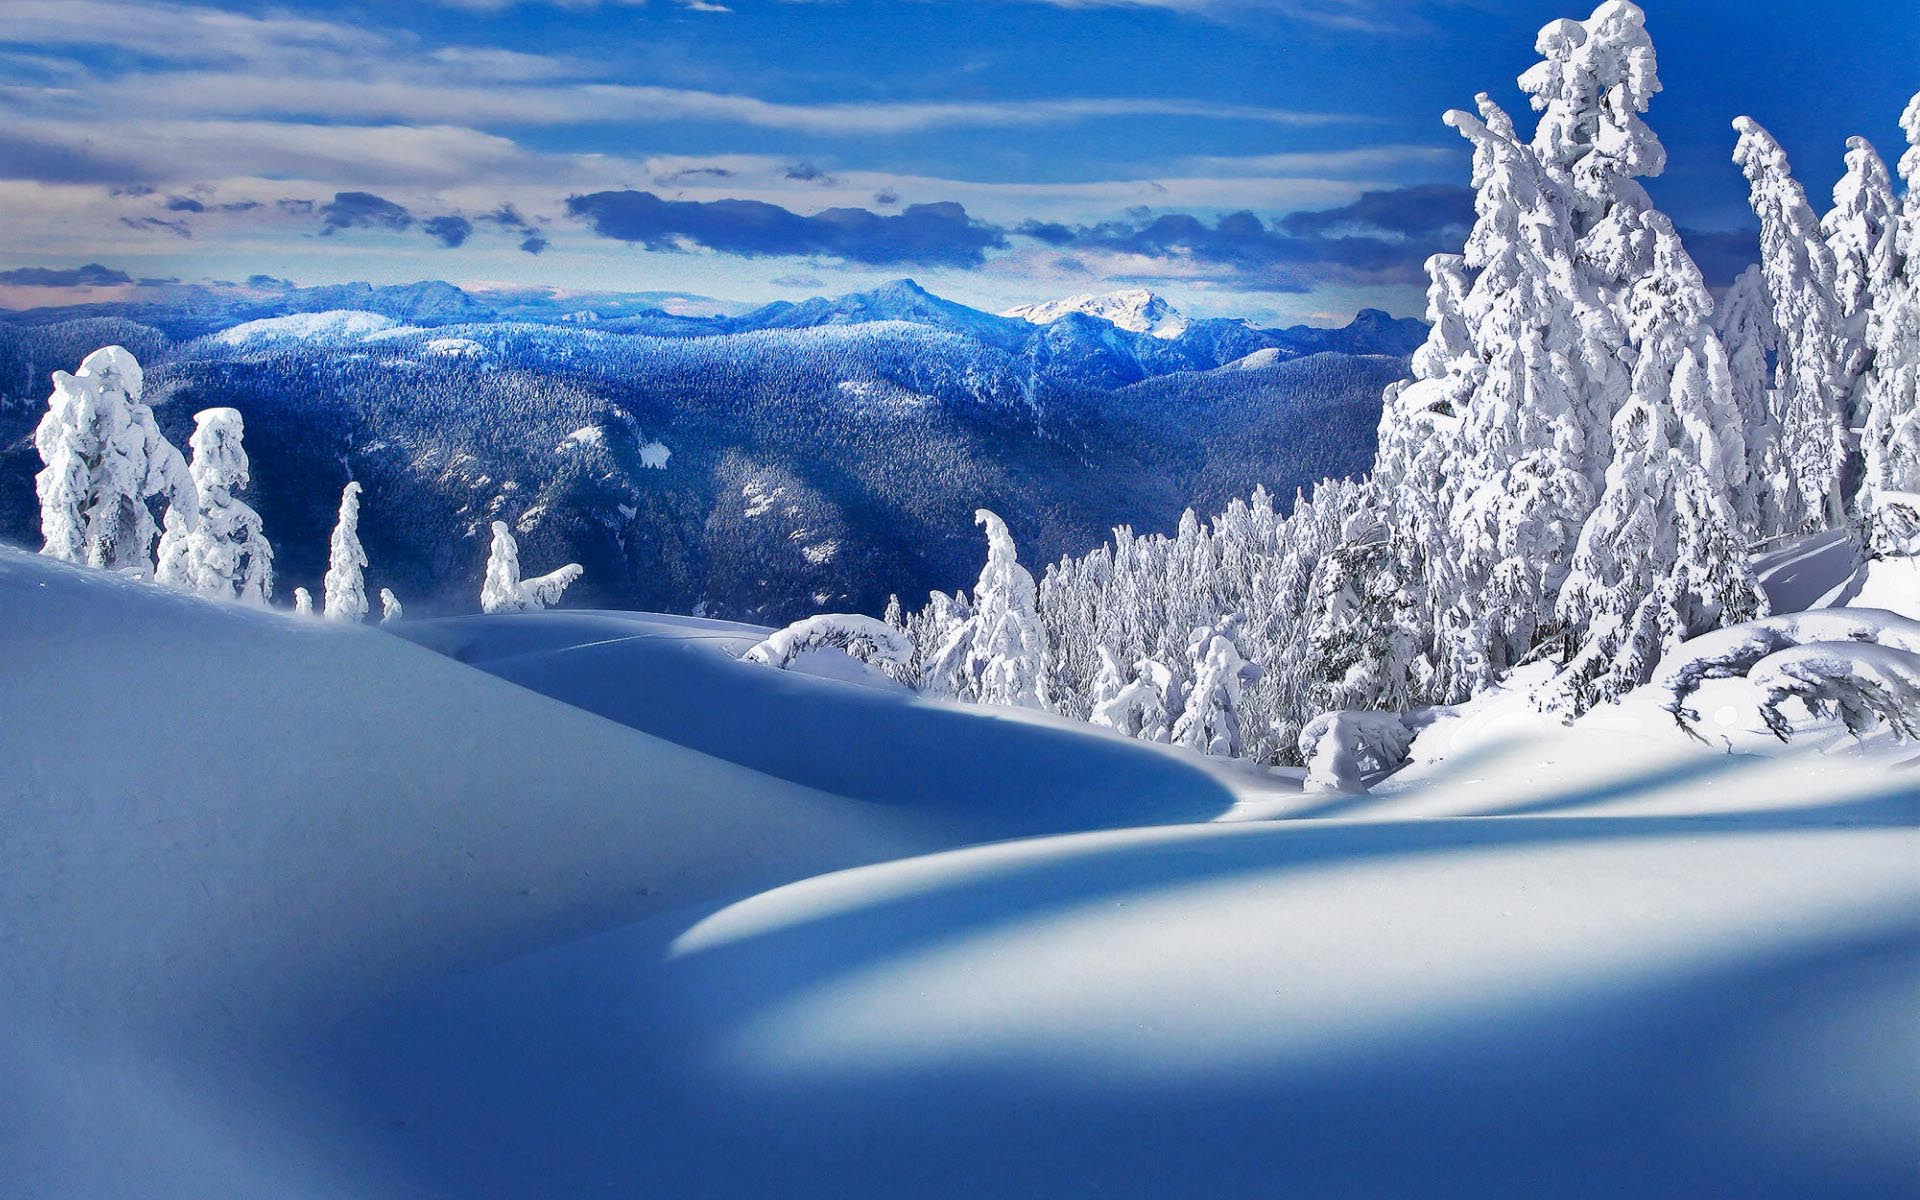 ice mountains canada hd free 3d desktop backgrounds wallpaper pictures 1920x1200